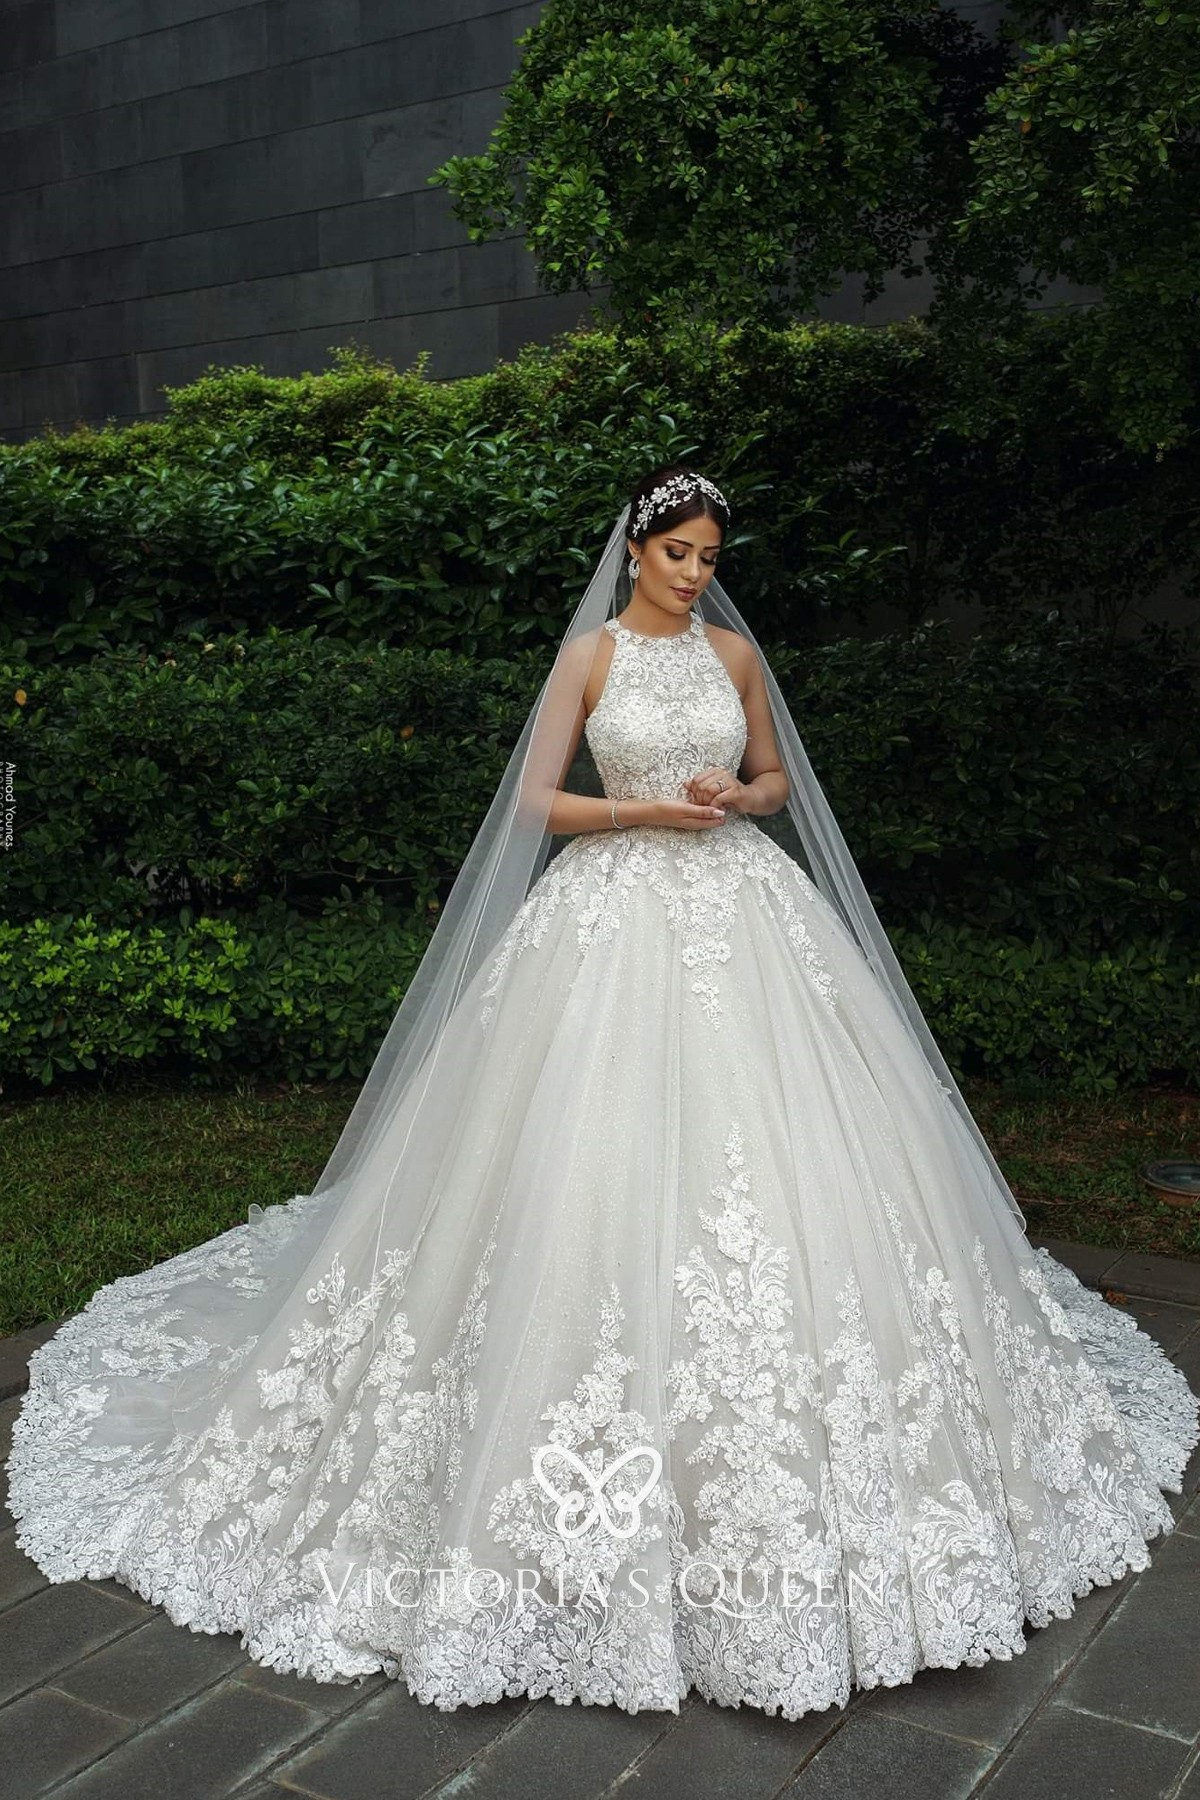 Halter Neck Lace Tulle Princess Wedding Ball Gown Vq